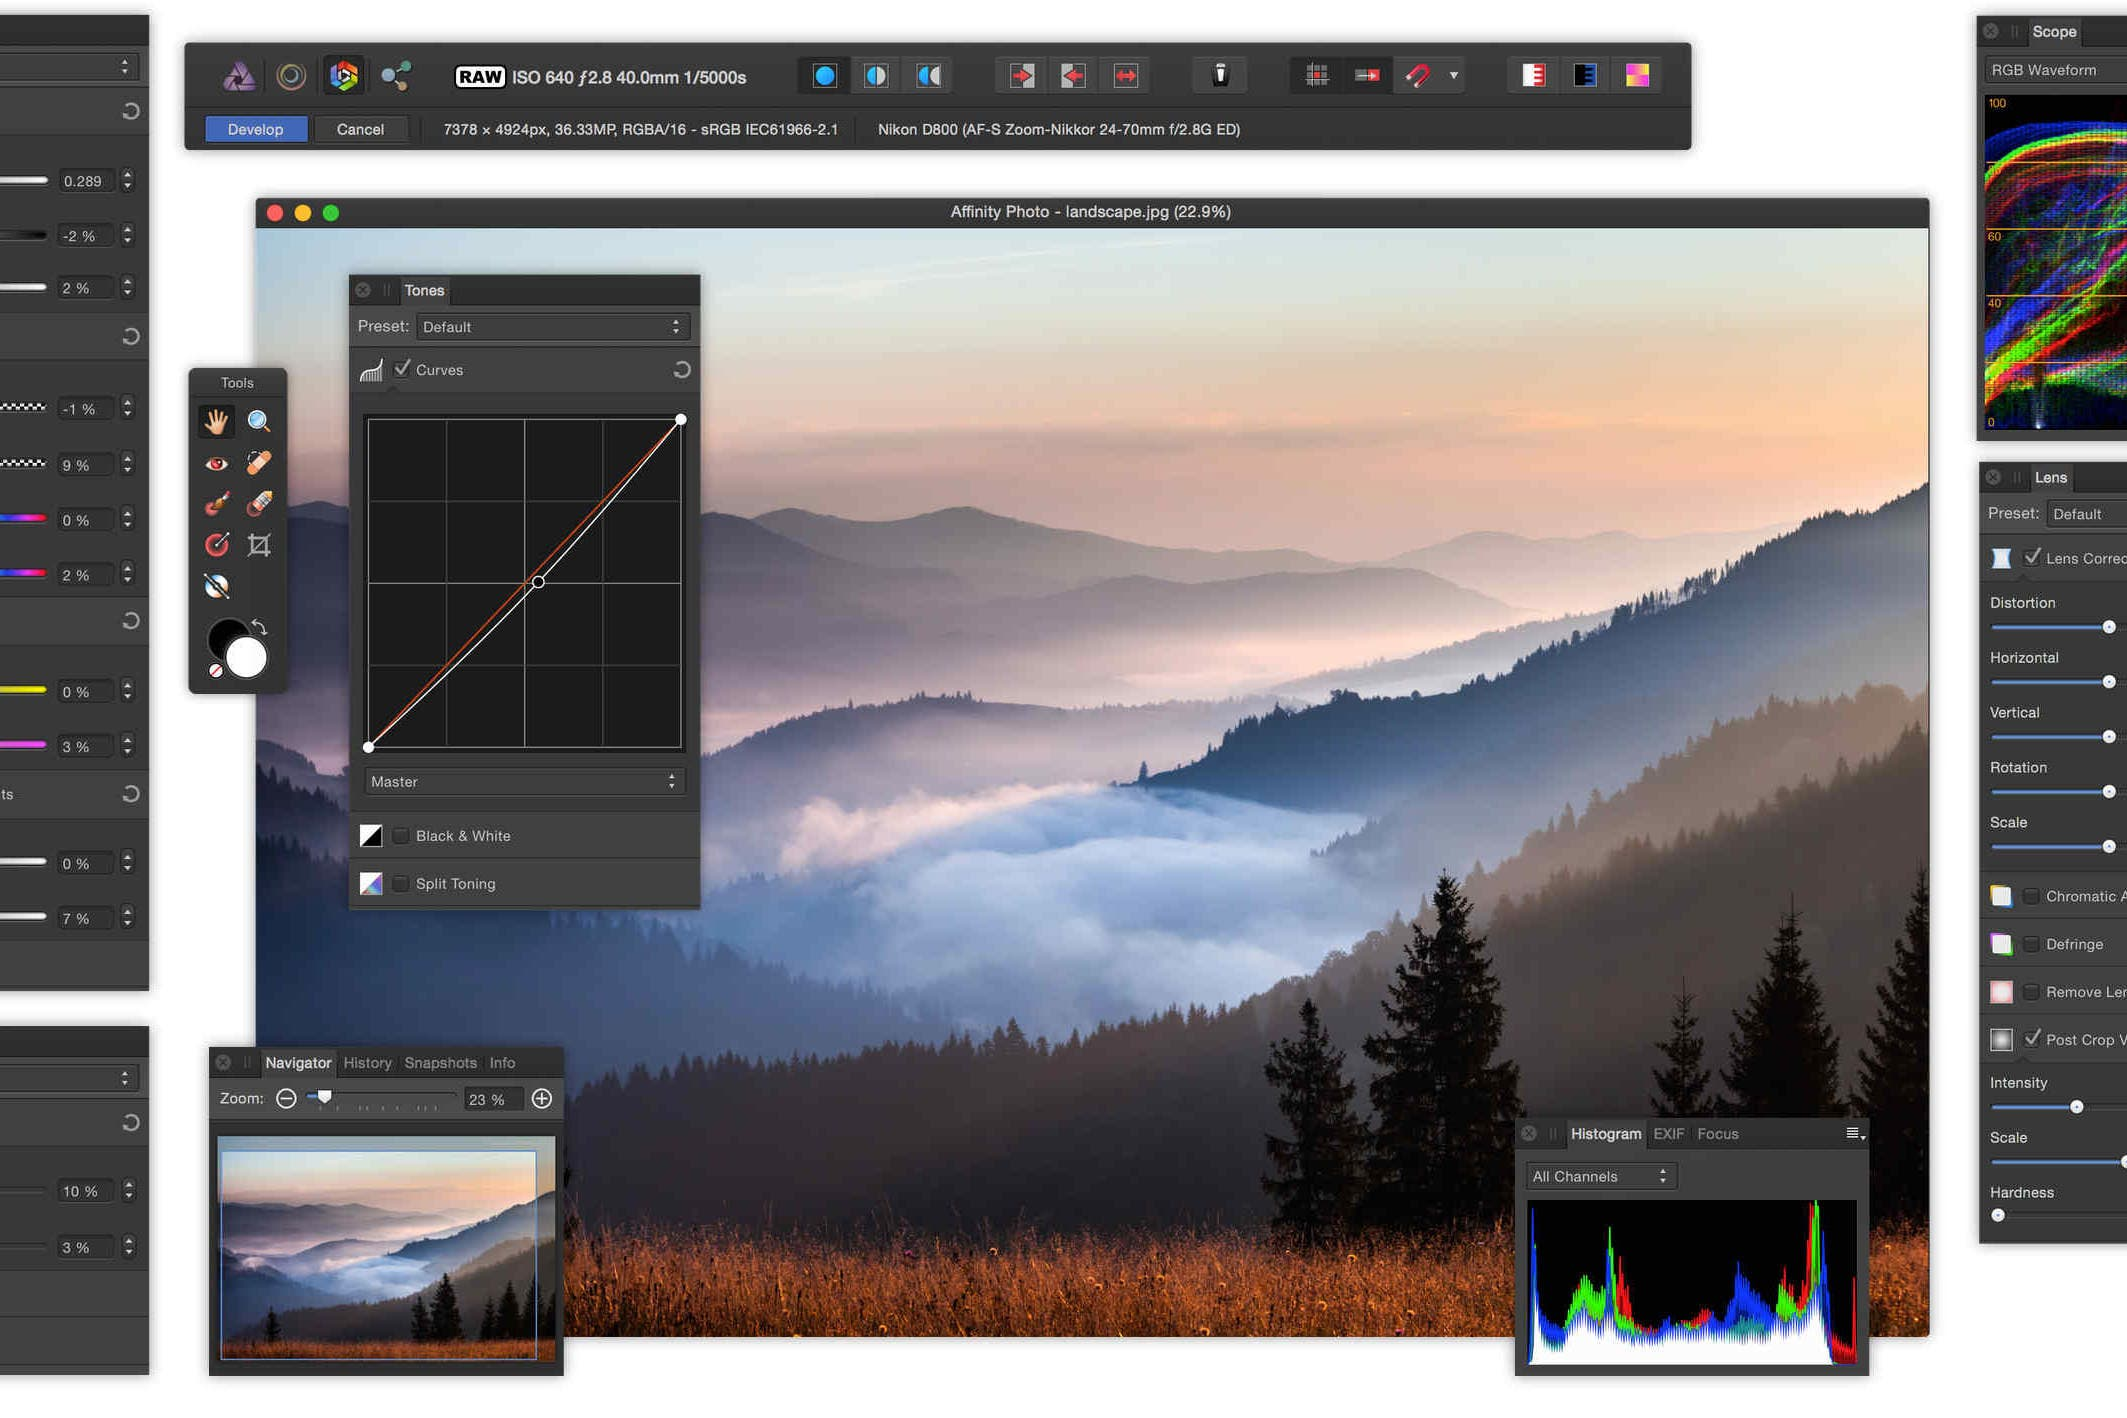 Affinity Photo Version 1.5 Update Brings Full Cross Compatability